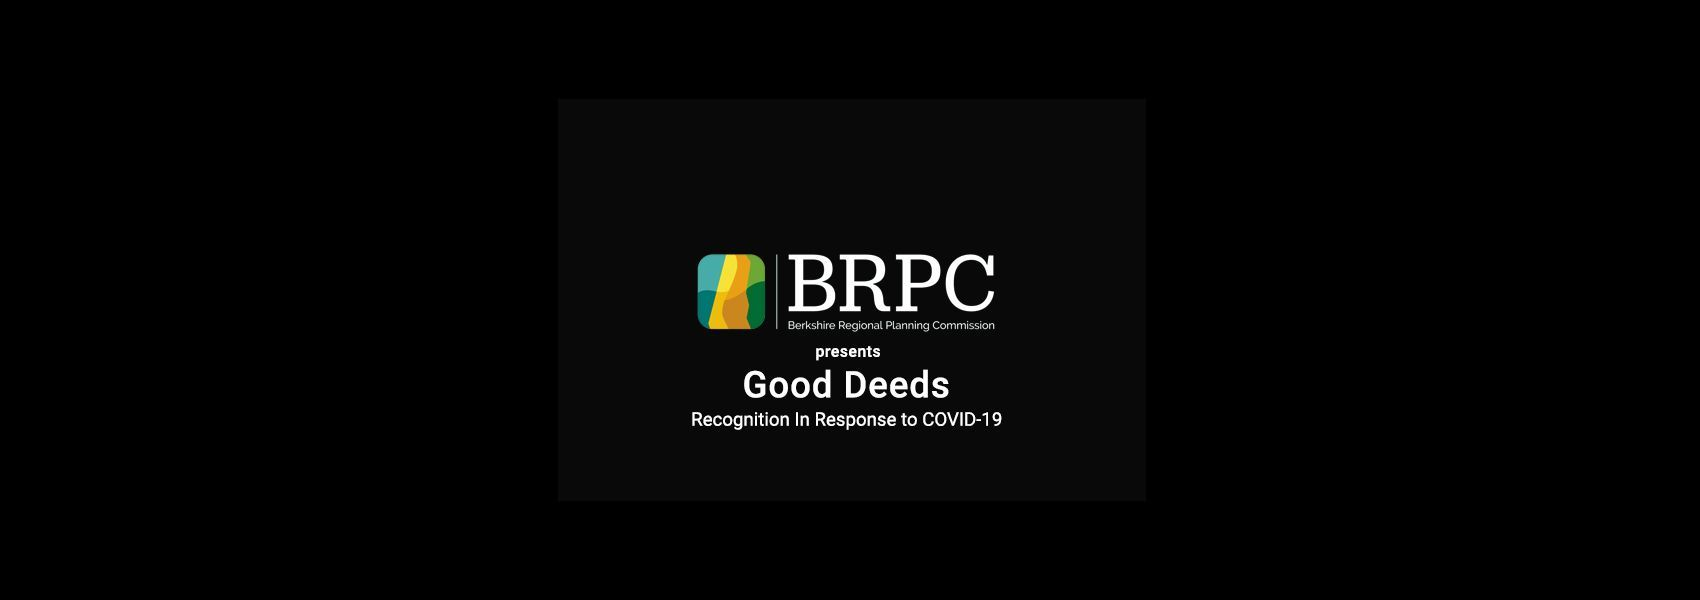 Recognizing Good Deeds